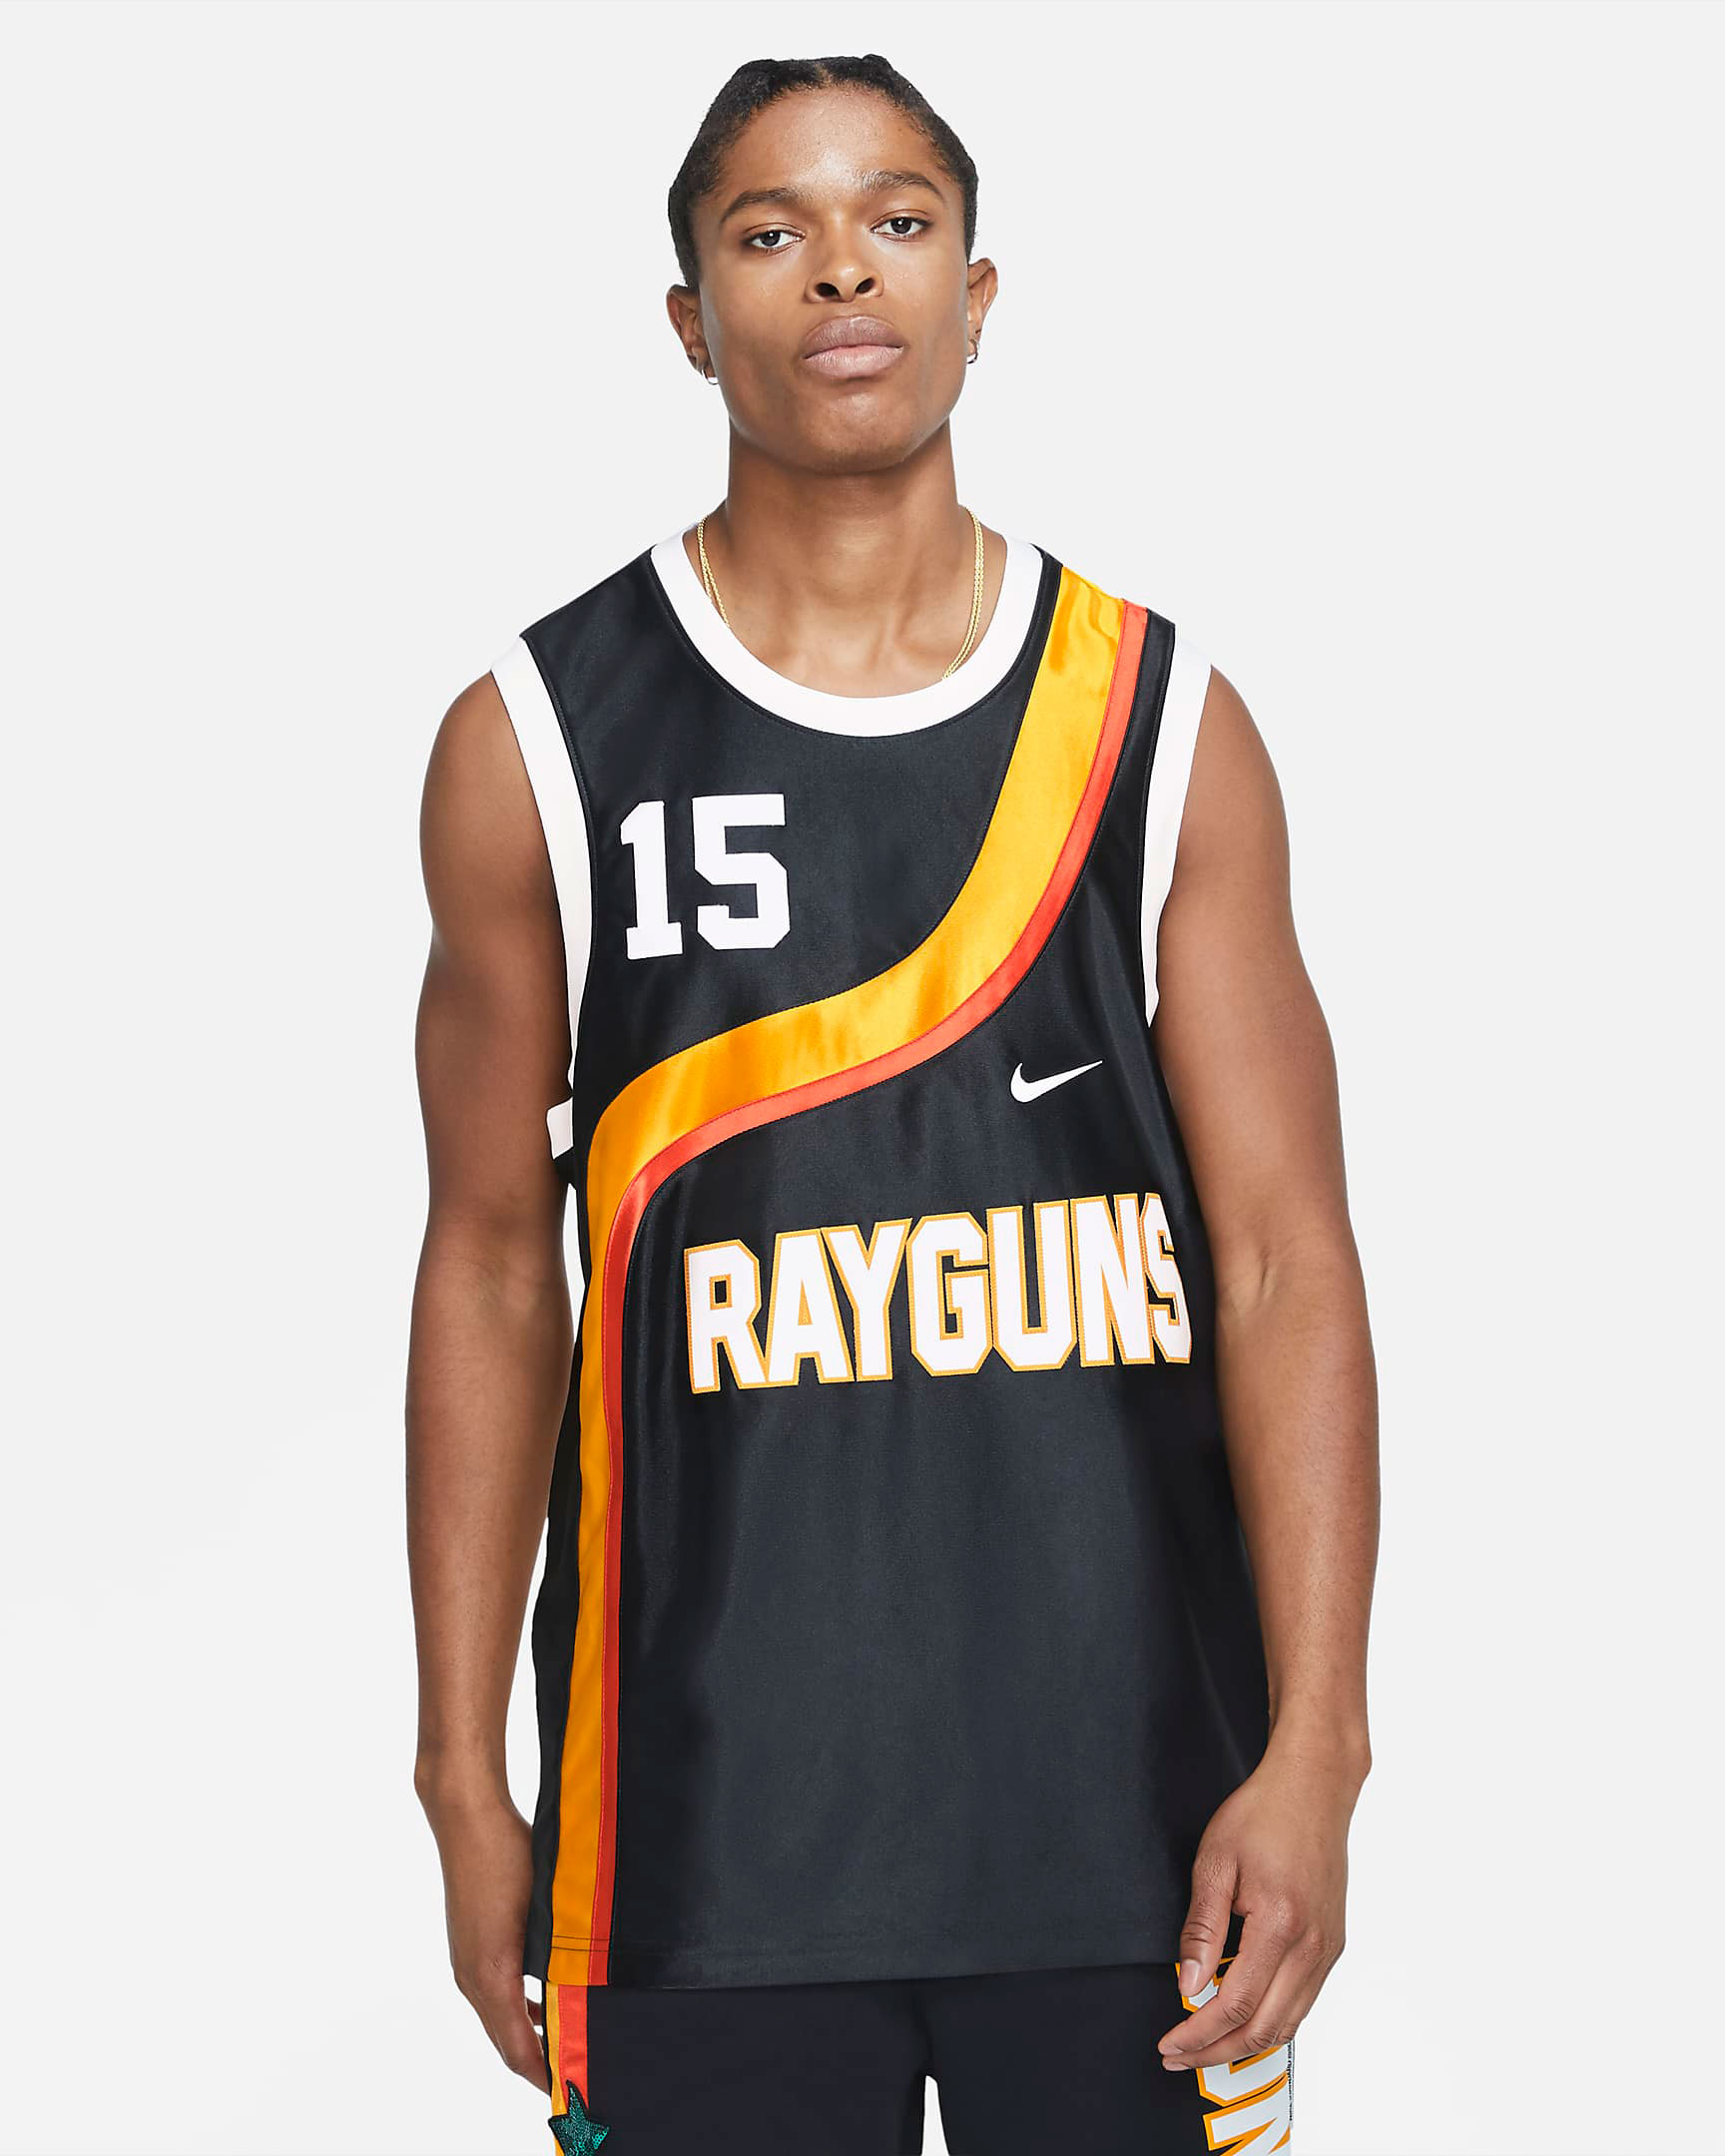 nike-roswell-rayguns-black-carter-jersey-1